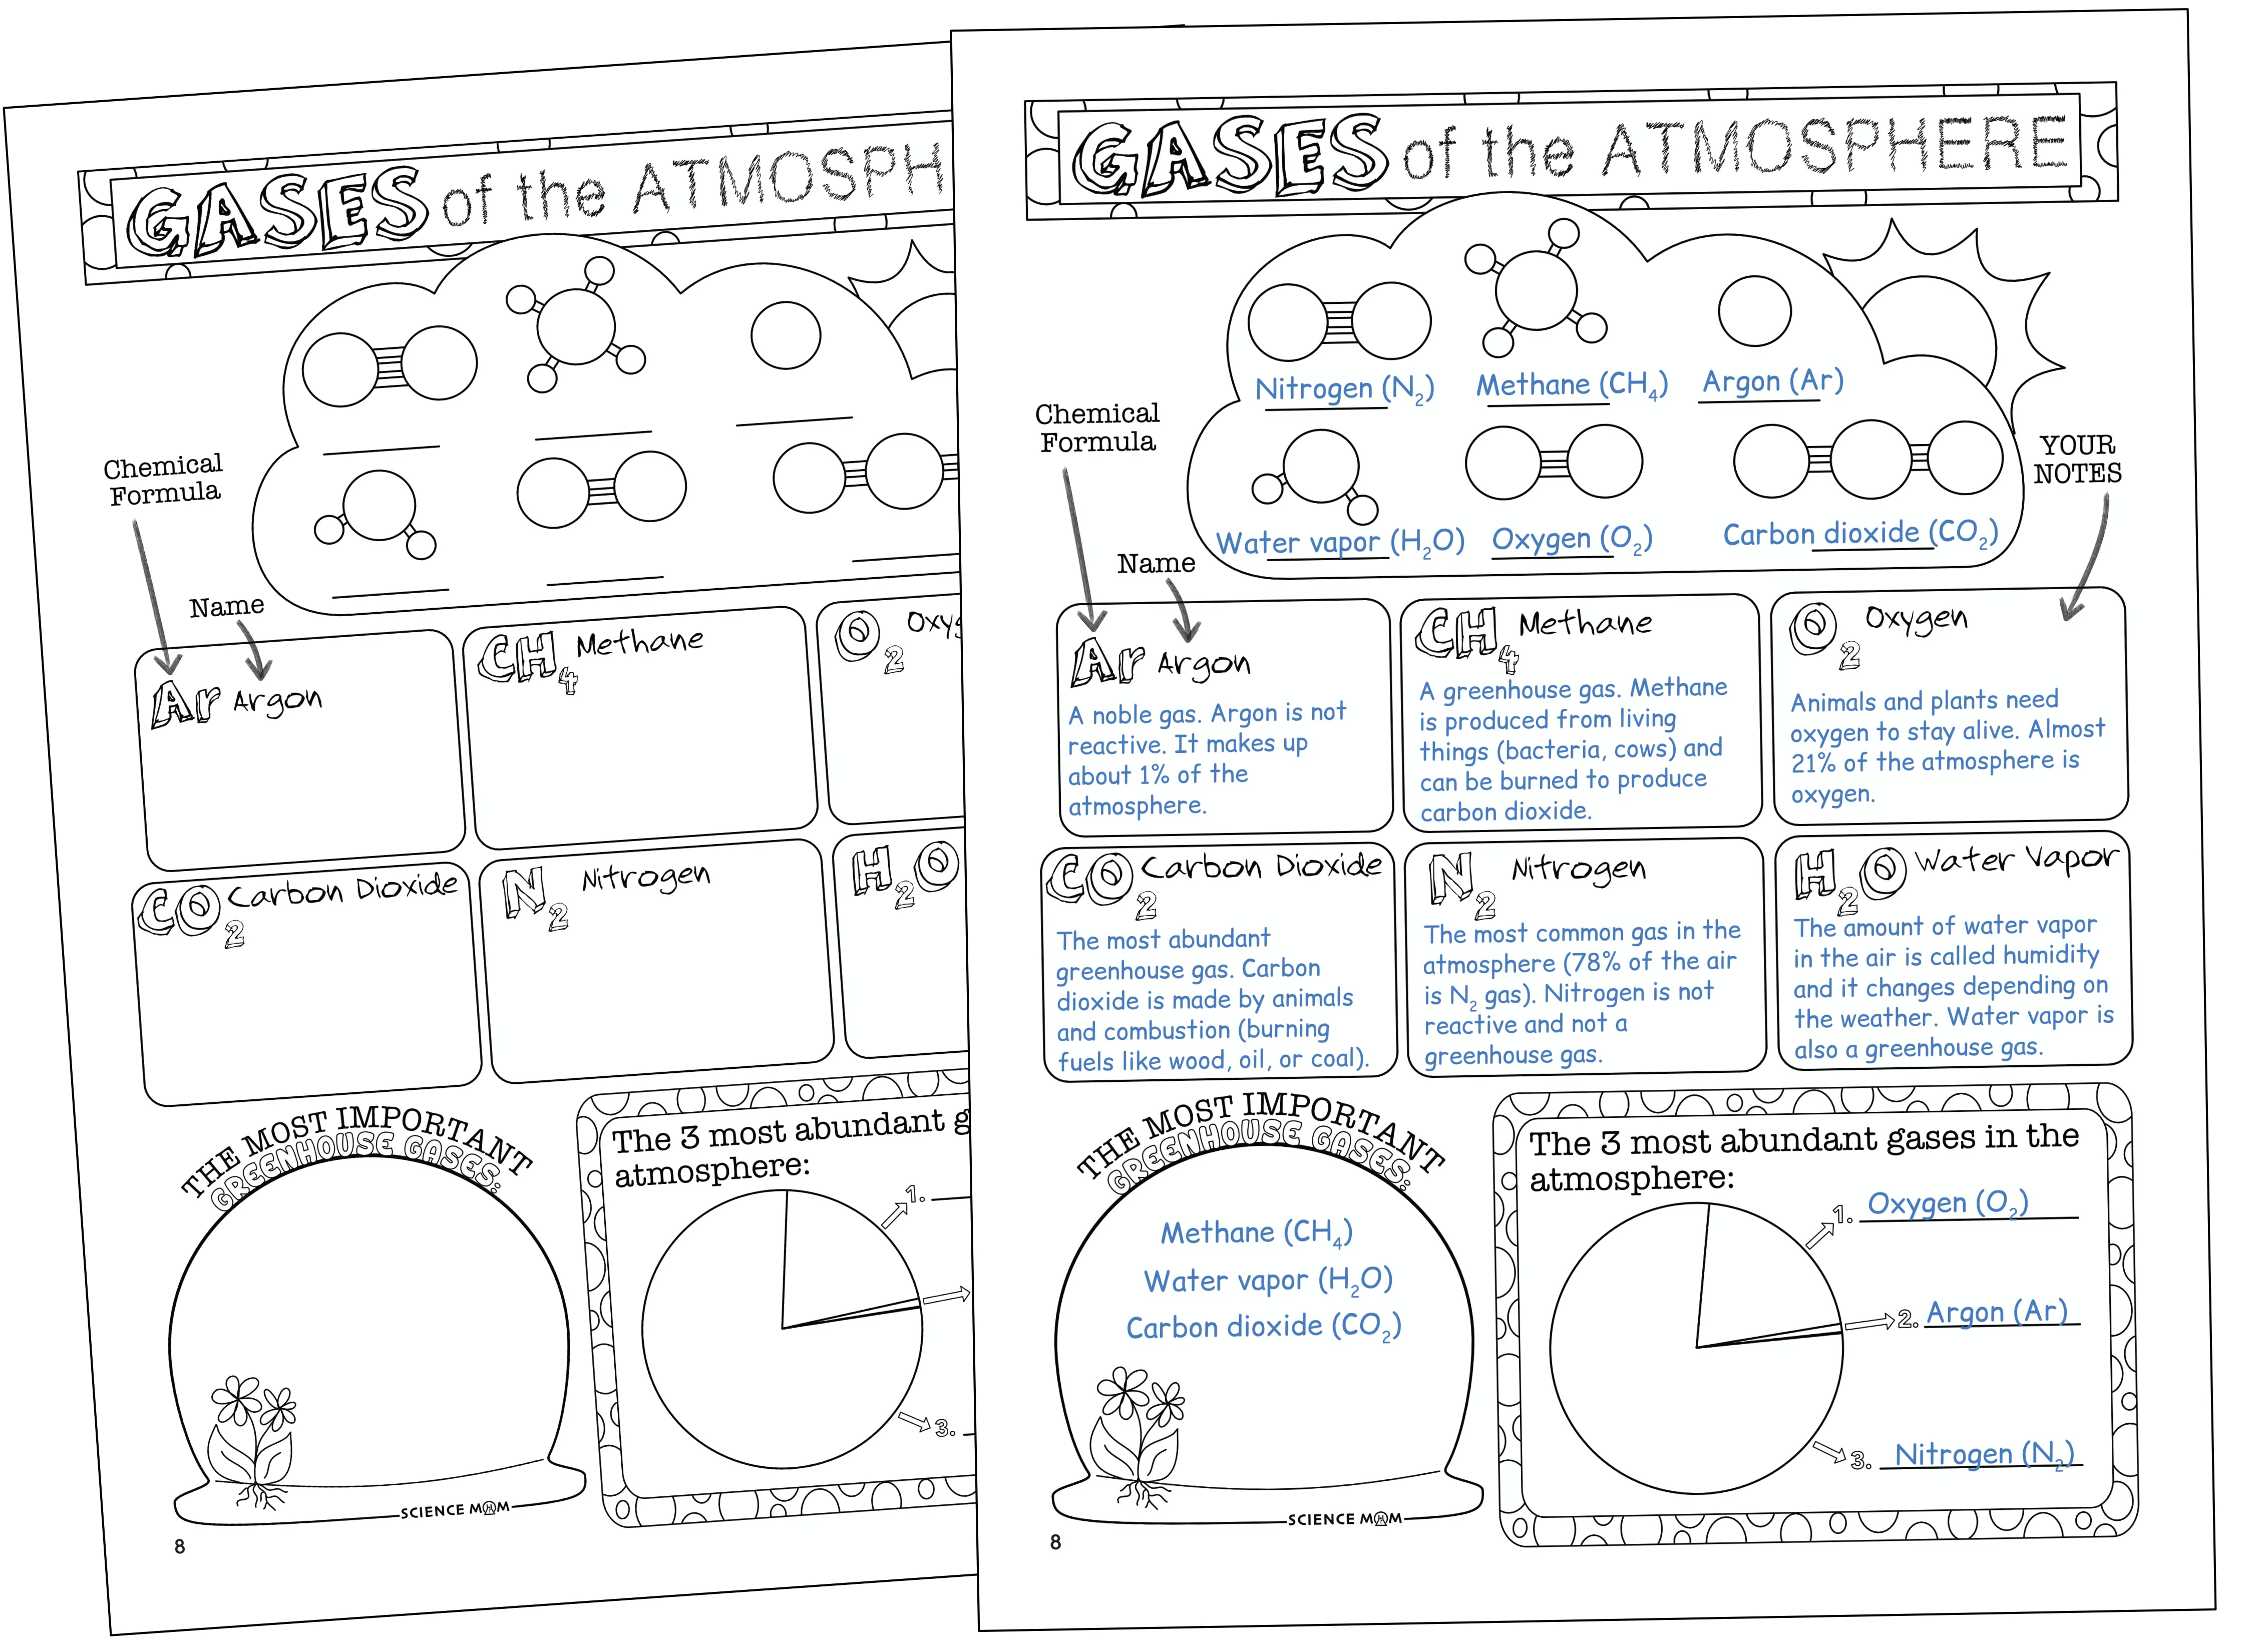 An images showing one of the pages from our notes with its answer key.